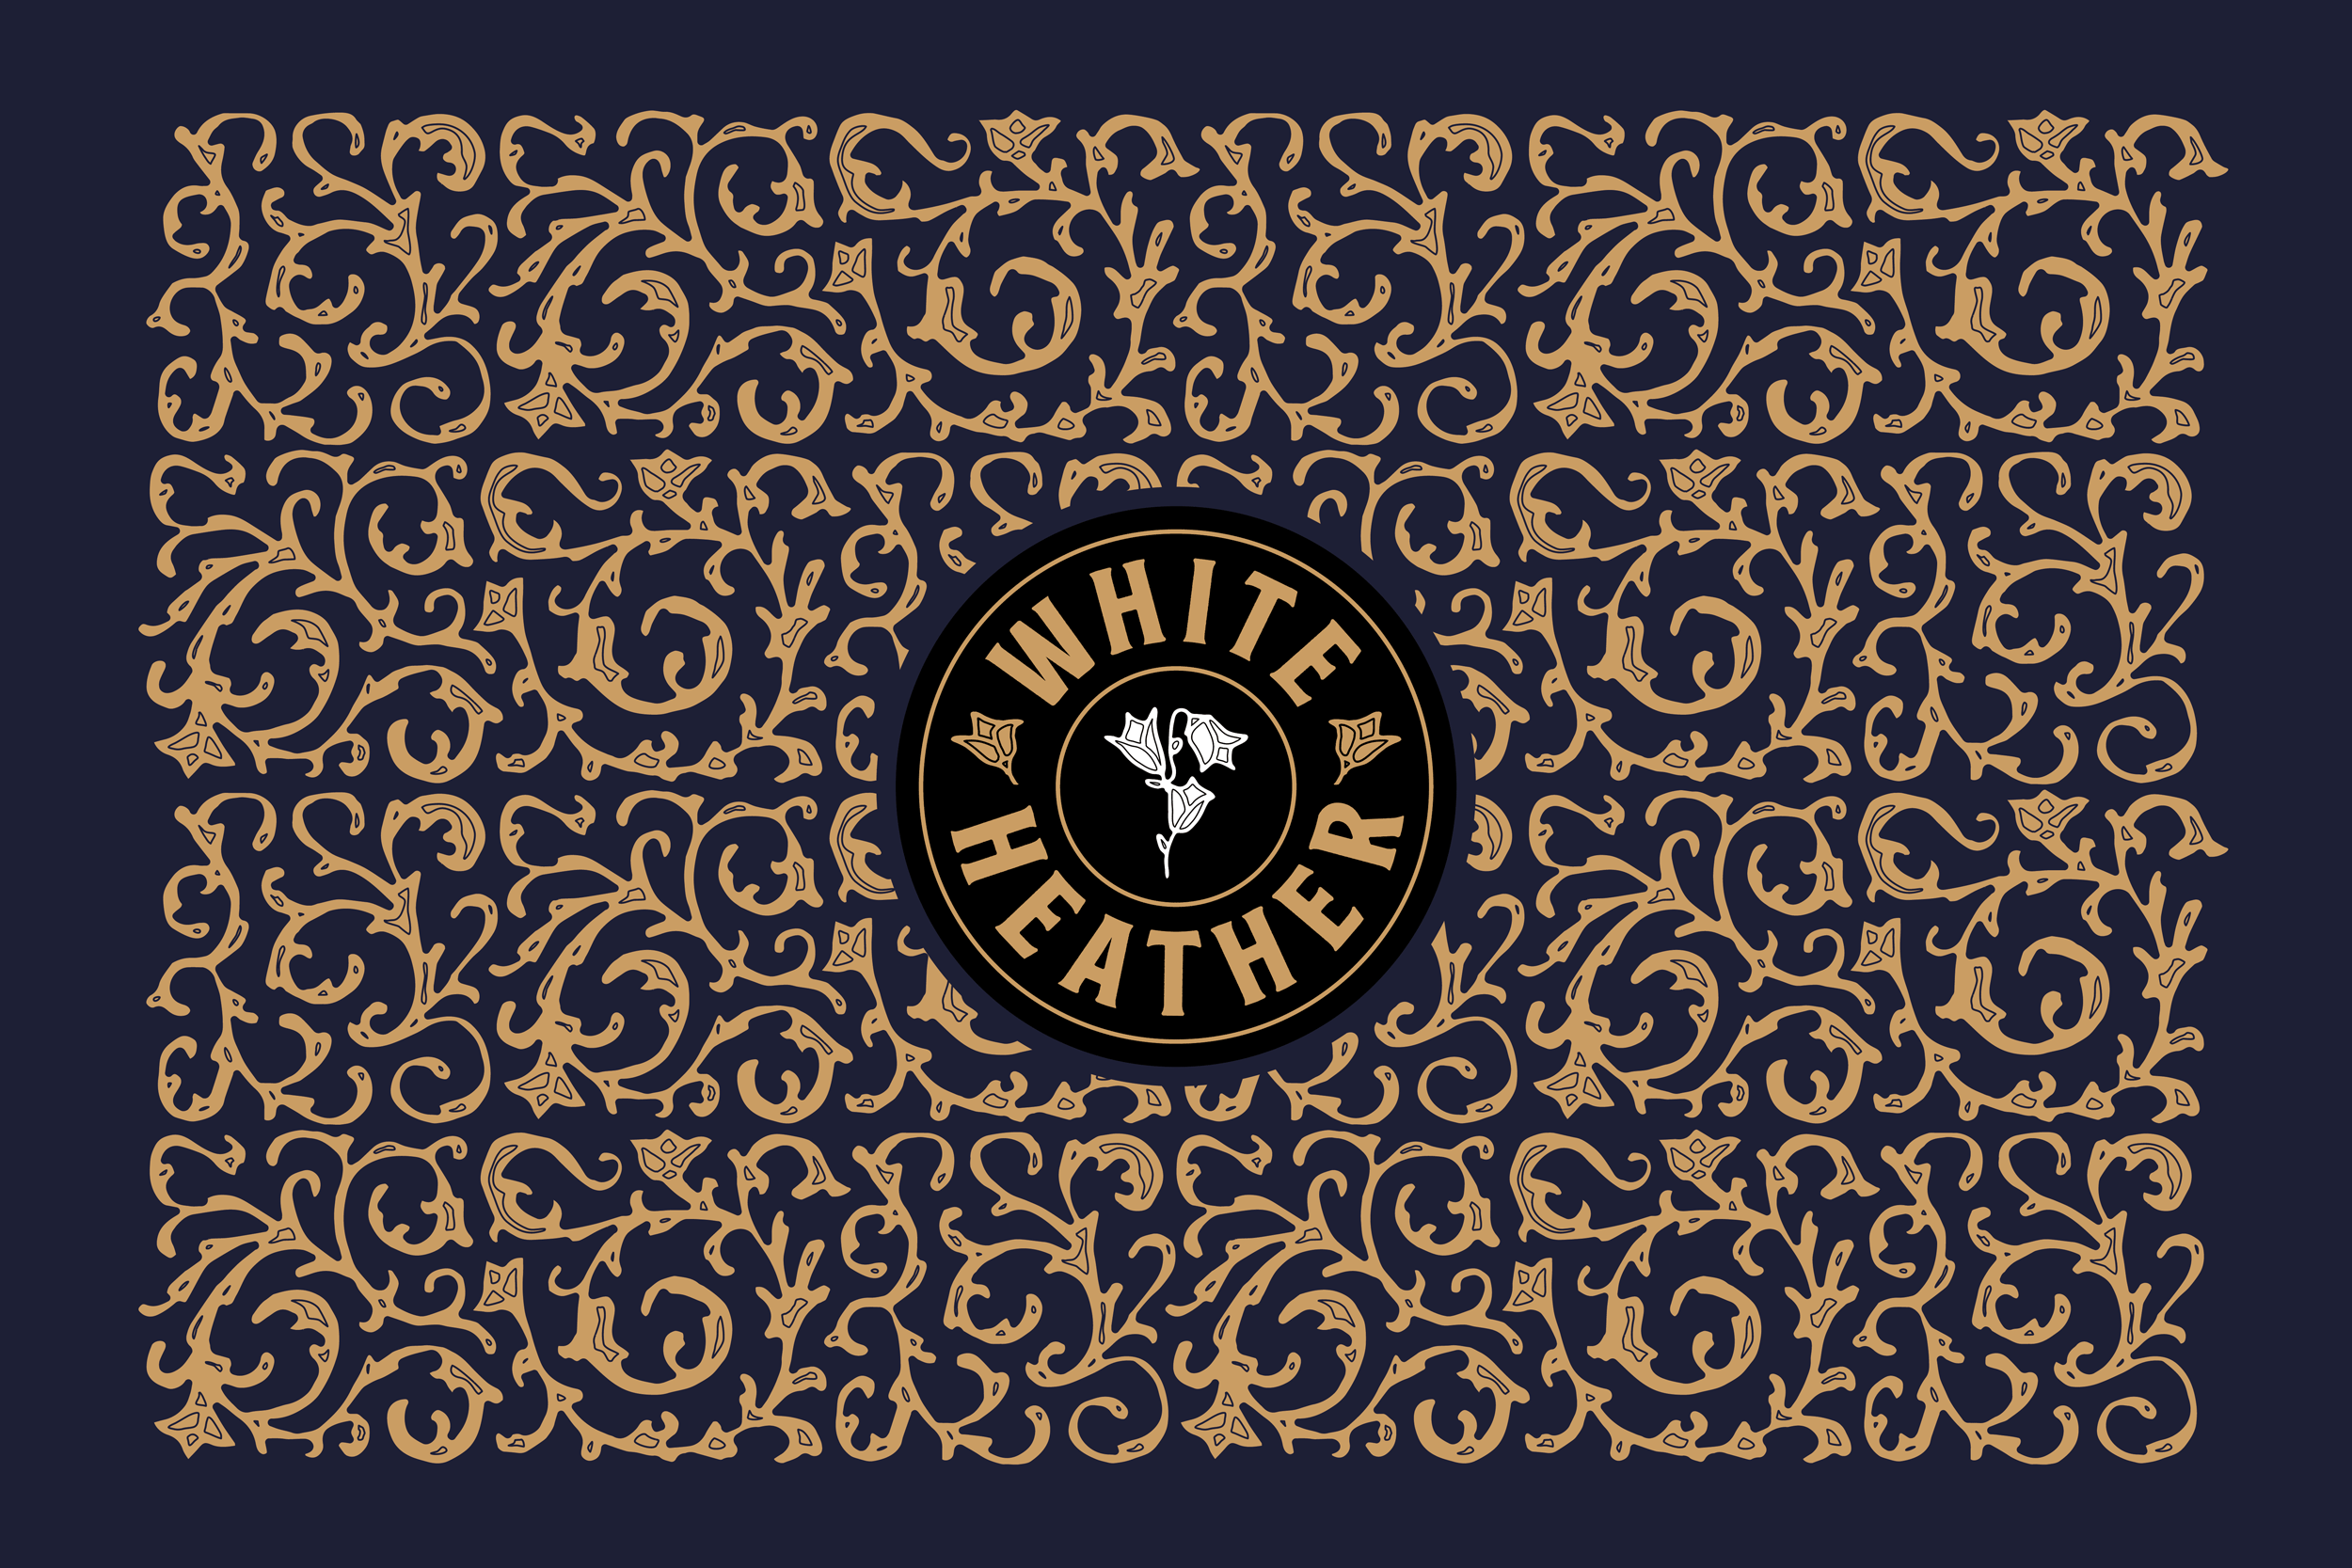 Whisky as Rare as White Heather Blended Scotch Whisky Packaging Design by Thirst Craft